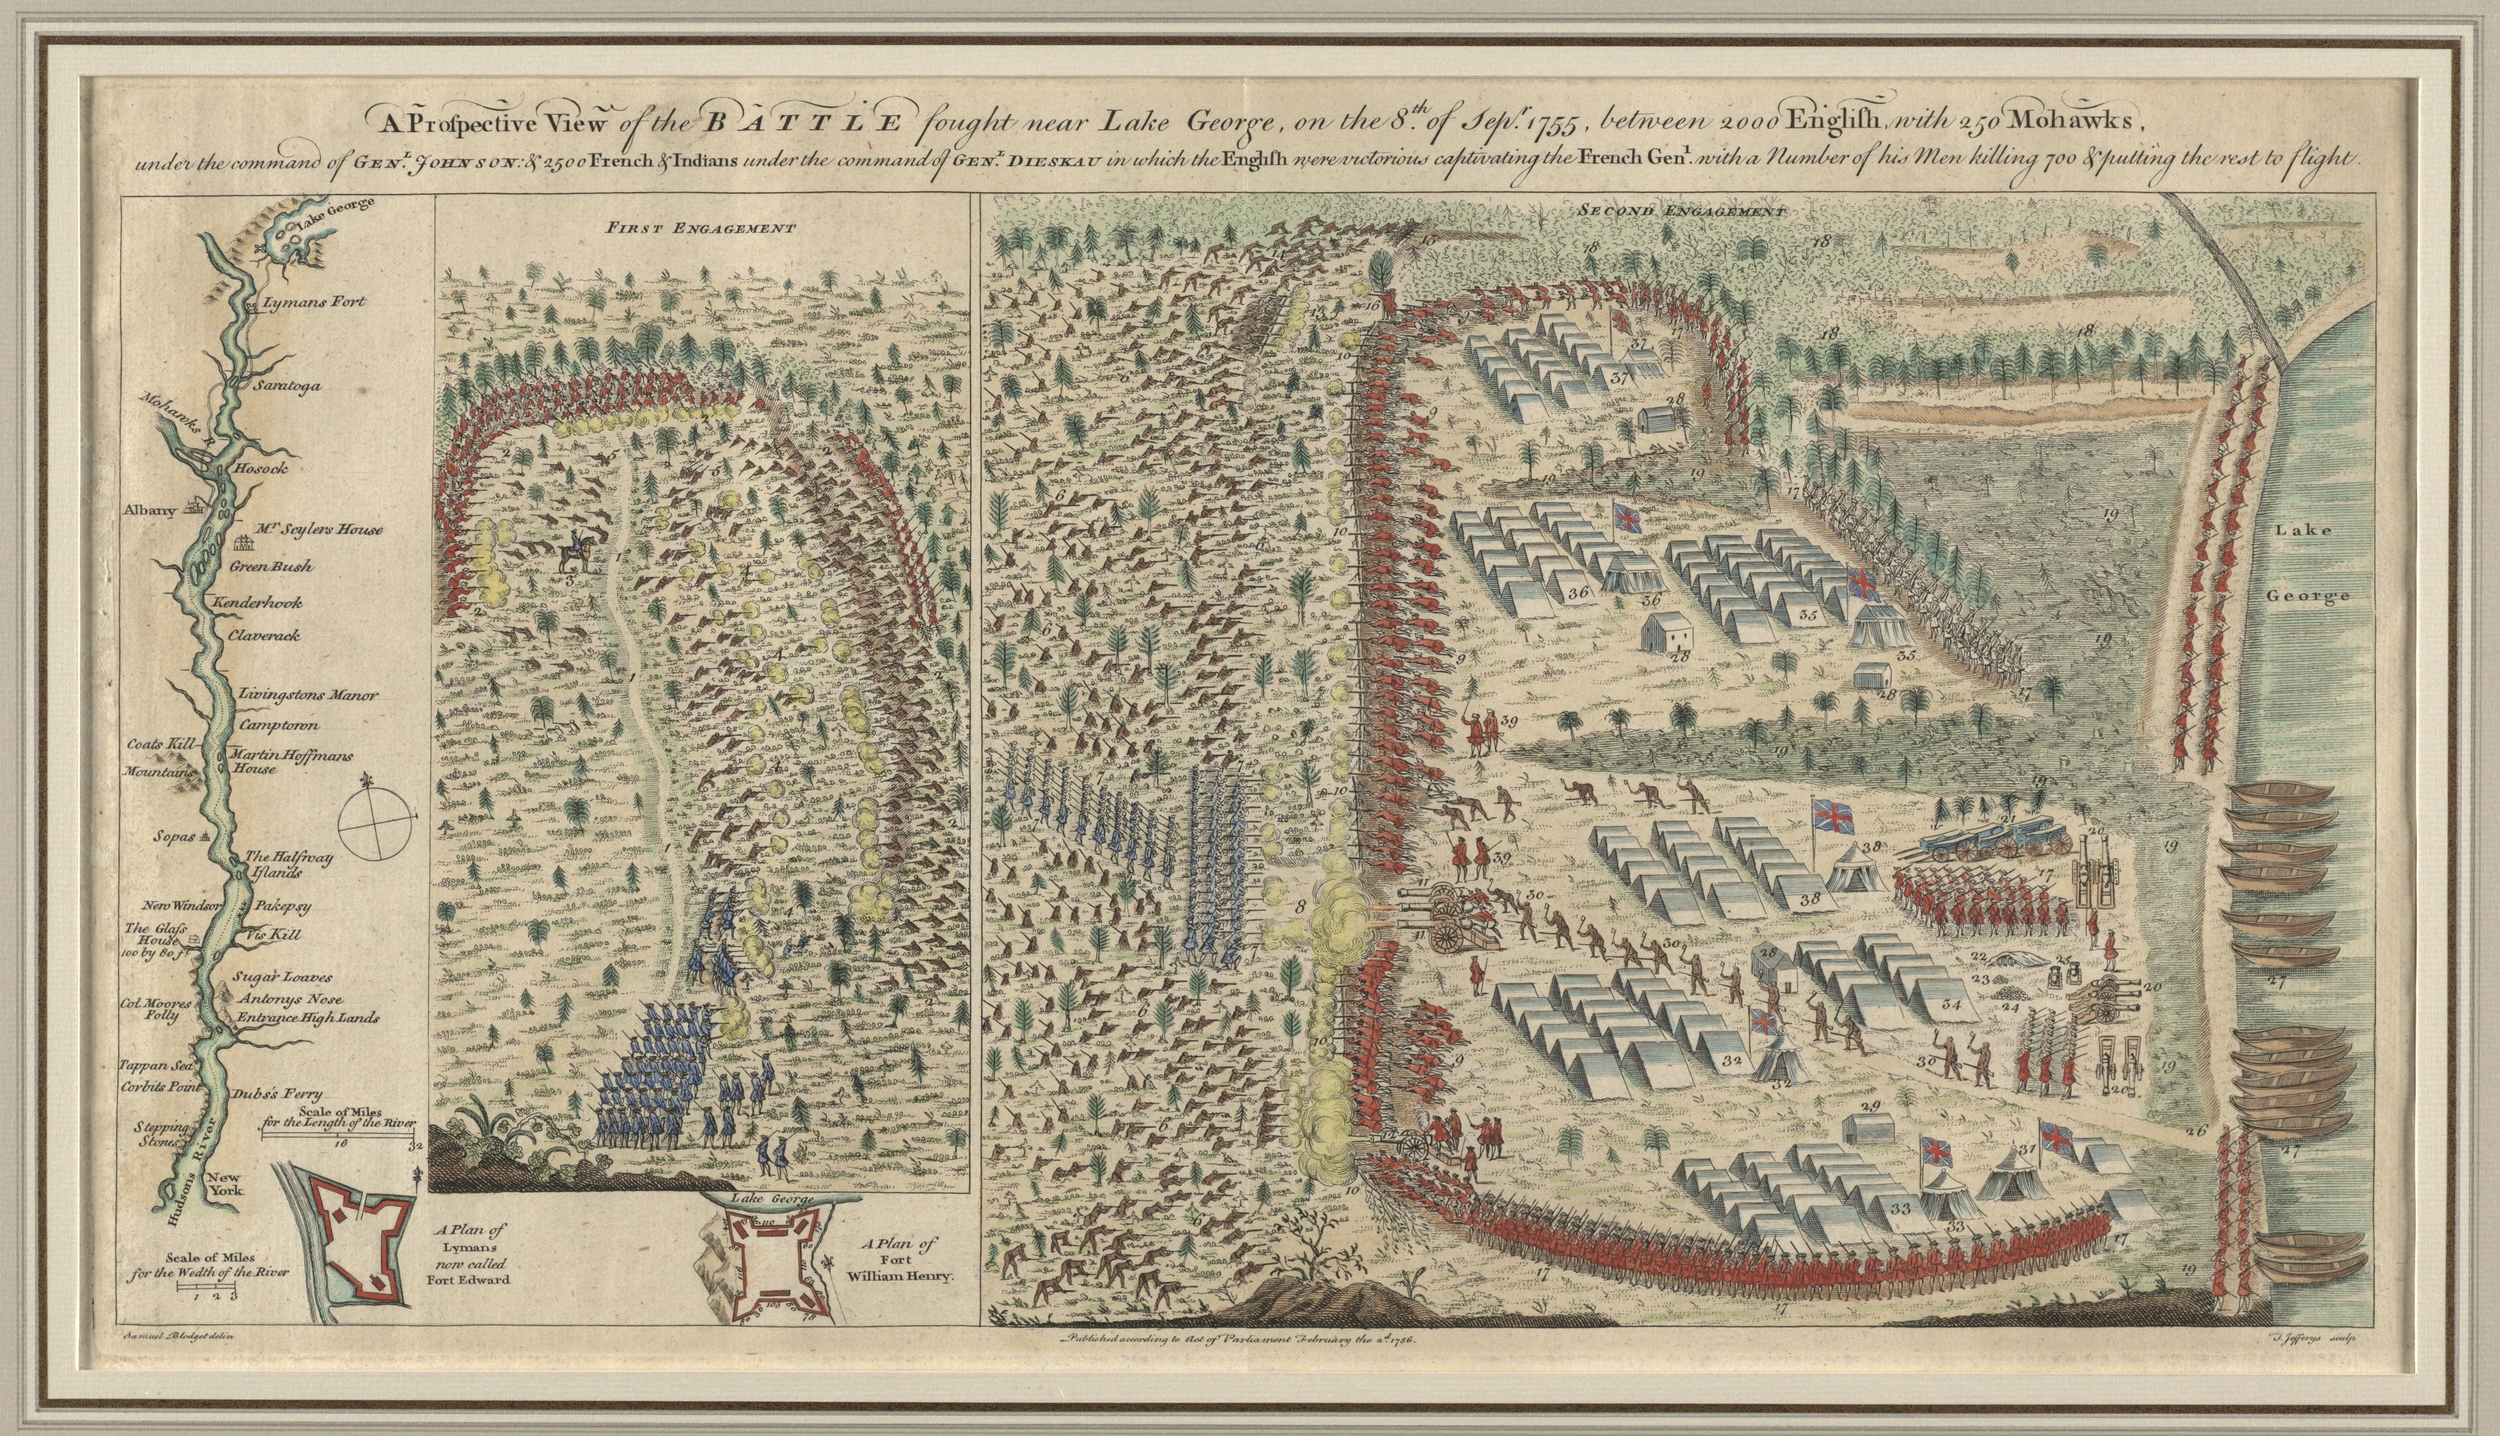 Samuel Blodget, A Prospective View of the Battle Fought near Lake George London, 1756. Engraving, hand colored, Richard H. Brown Collection, Norman B. Leventhal Map Center.